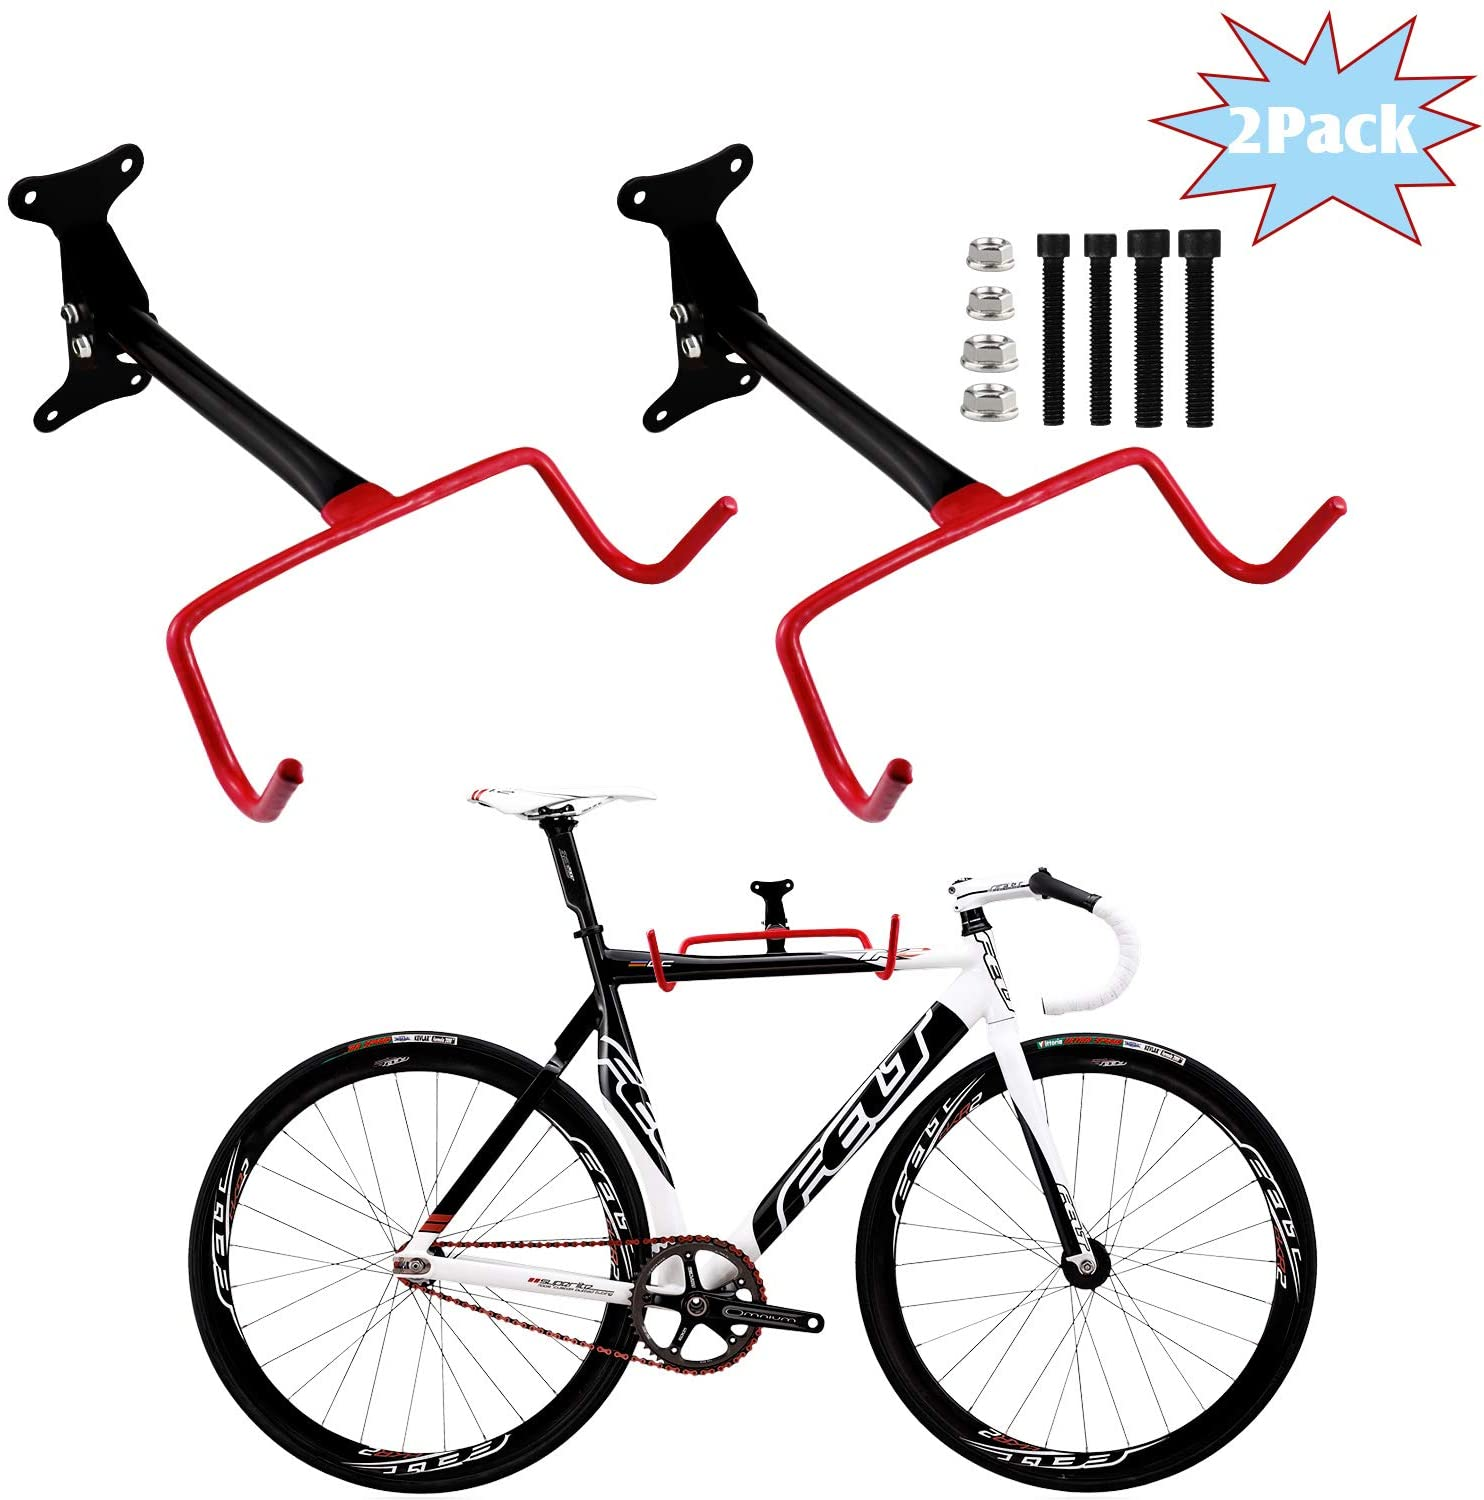 Bike Wall Mount Hanger, 2pcs Indoor Storage Rack, Flip Up Bike Hanger,Garage Bicycle Holder Hook Folding Space Saver with Screws, 66lb Max Capacity